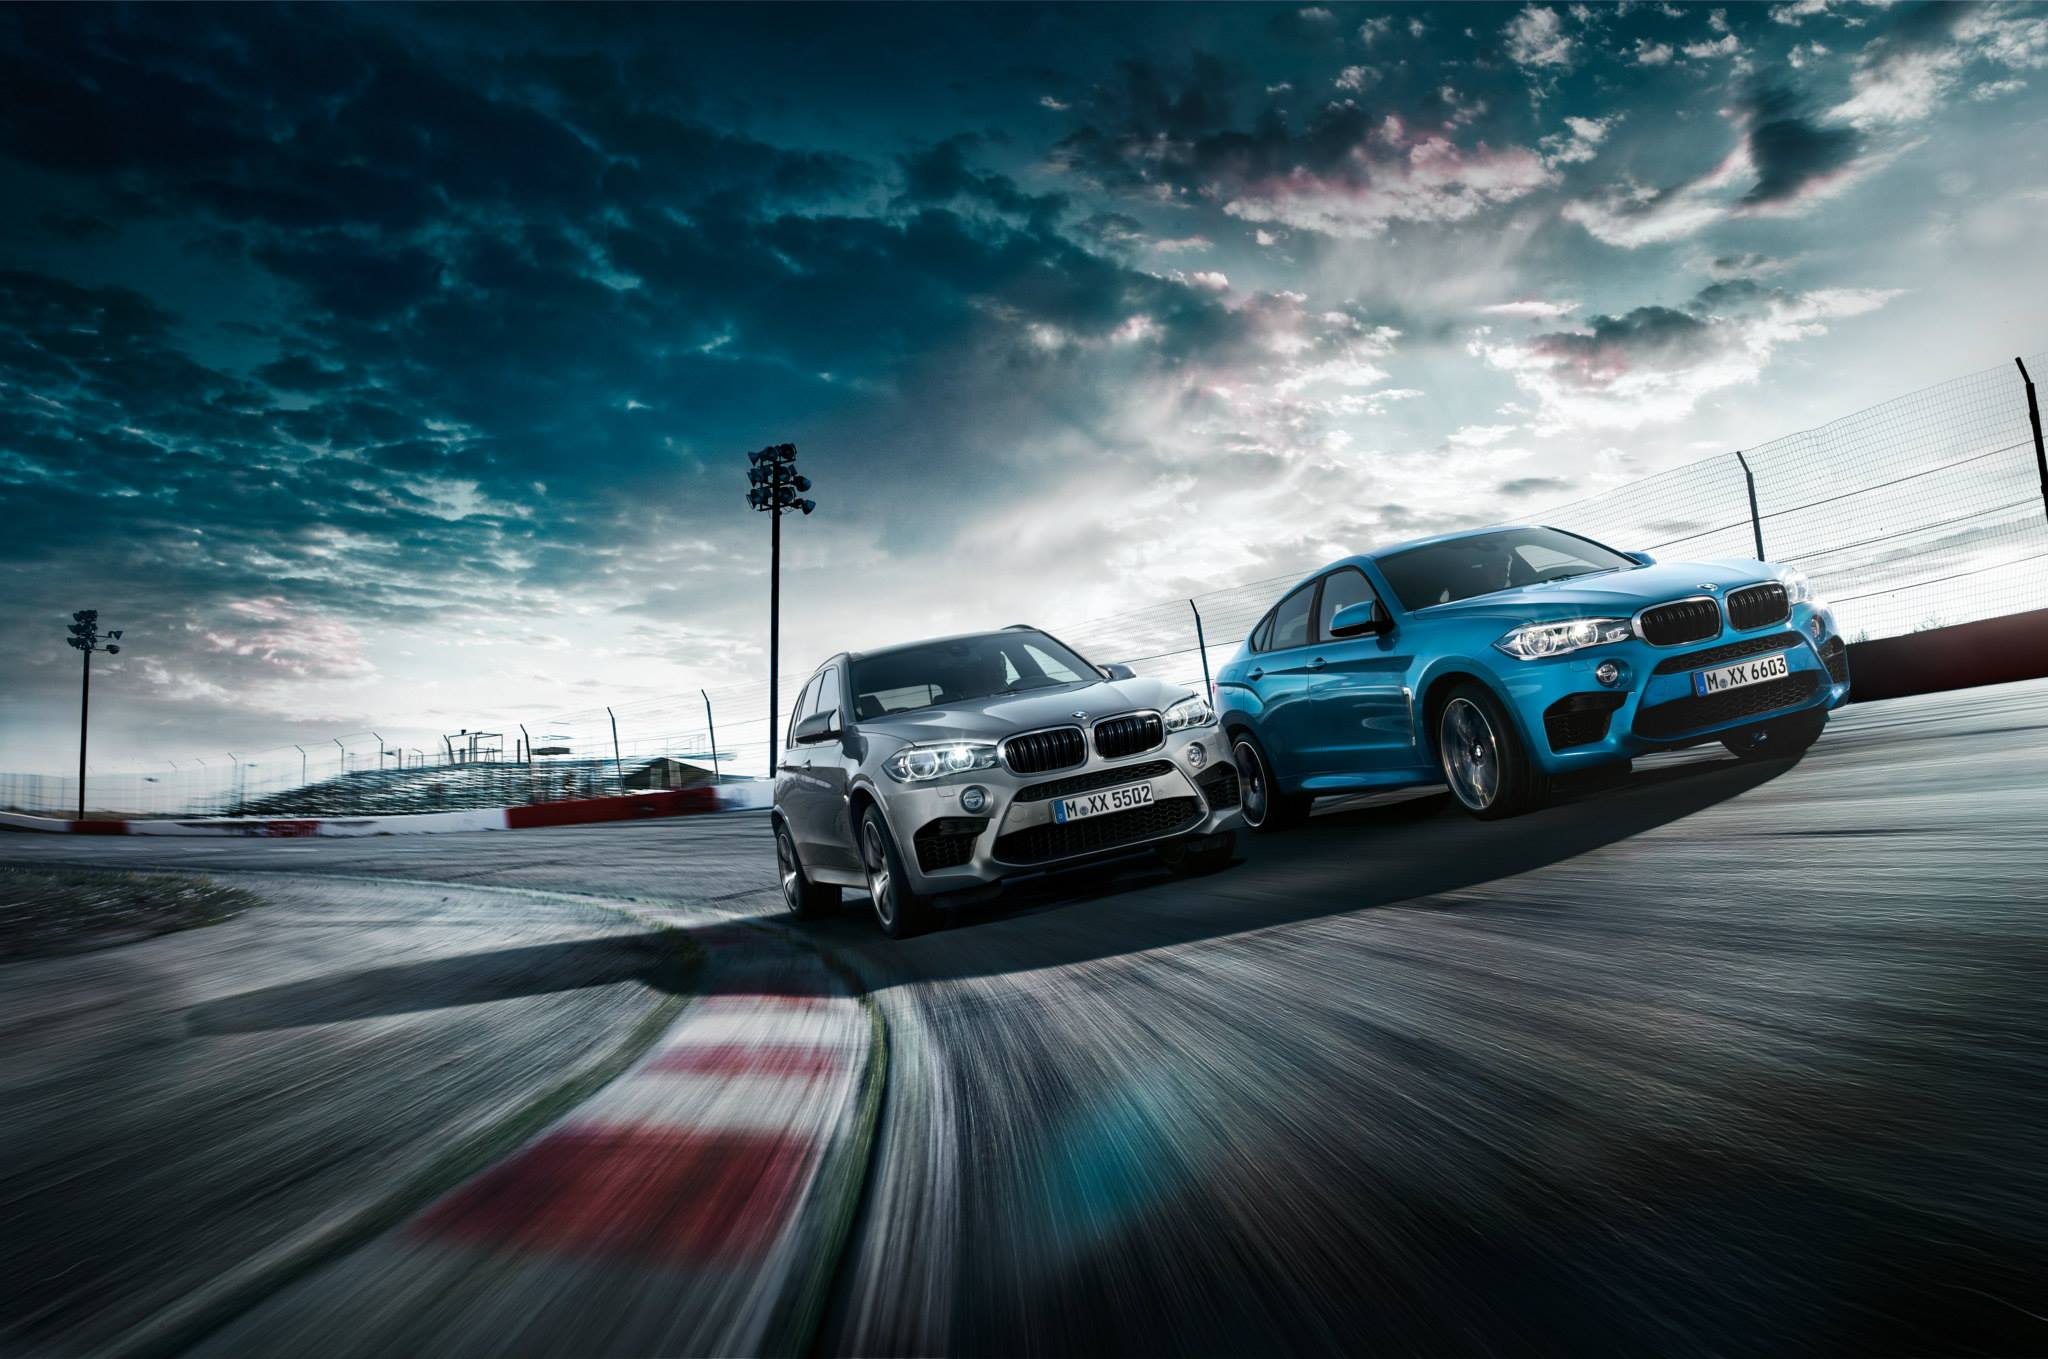 Elon Musk Car In Spac Wallpaper Your Batch Of 2015 Bmw X5 M And X6 M Wallpers Is Here